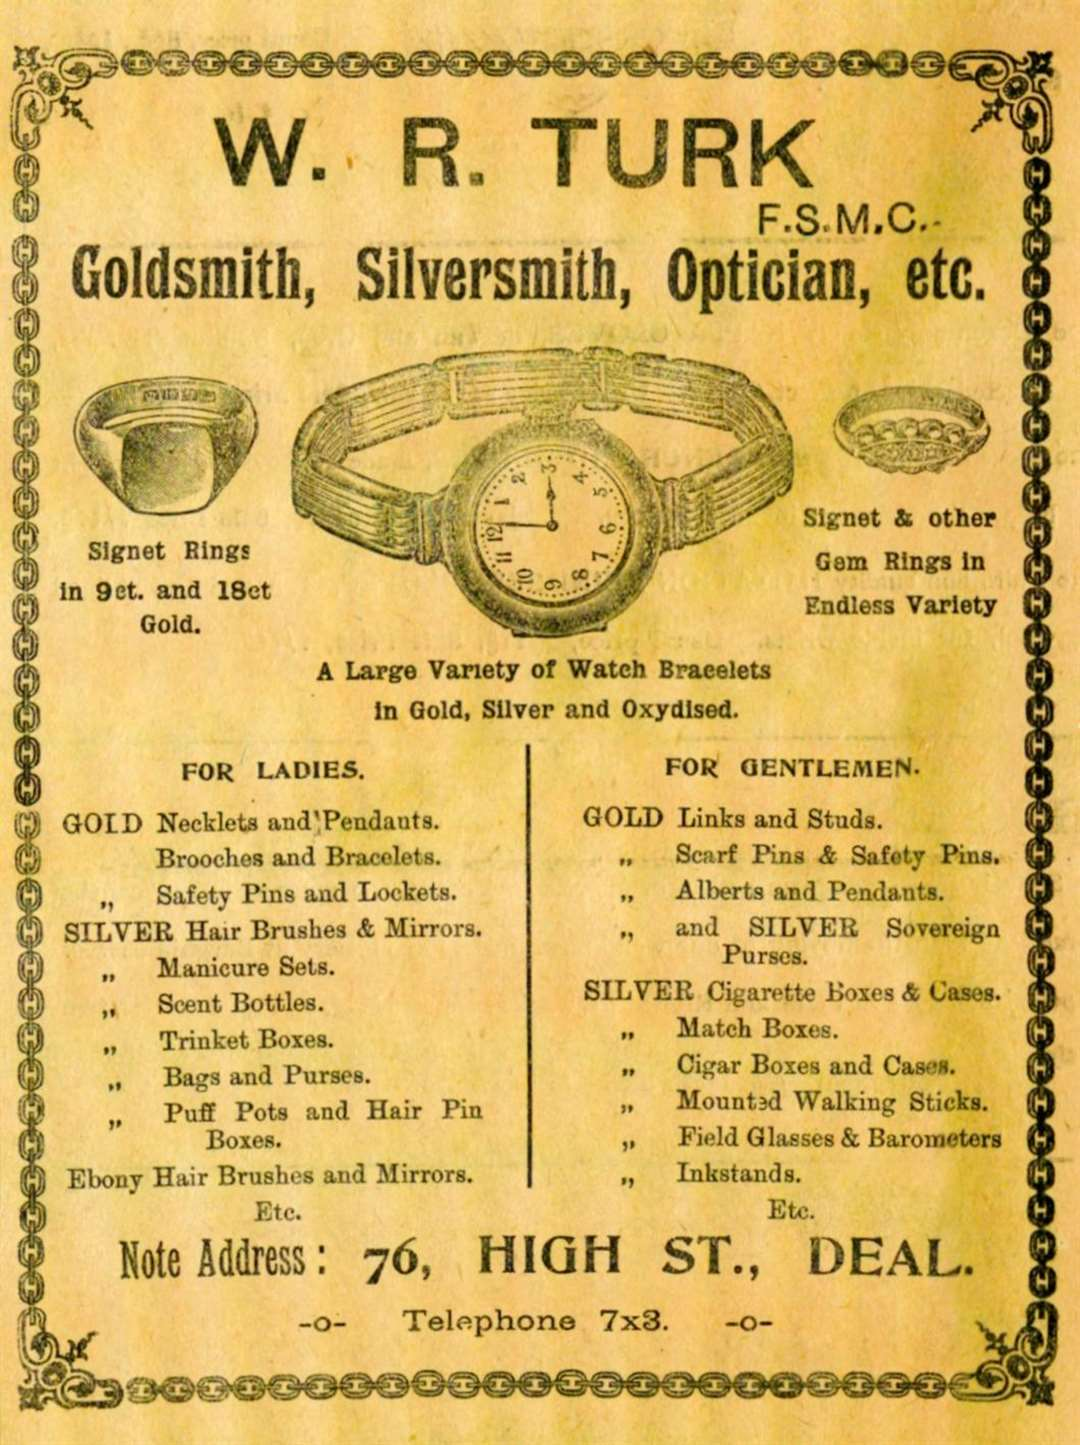 This advertisement appeared in January 1915